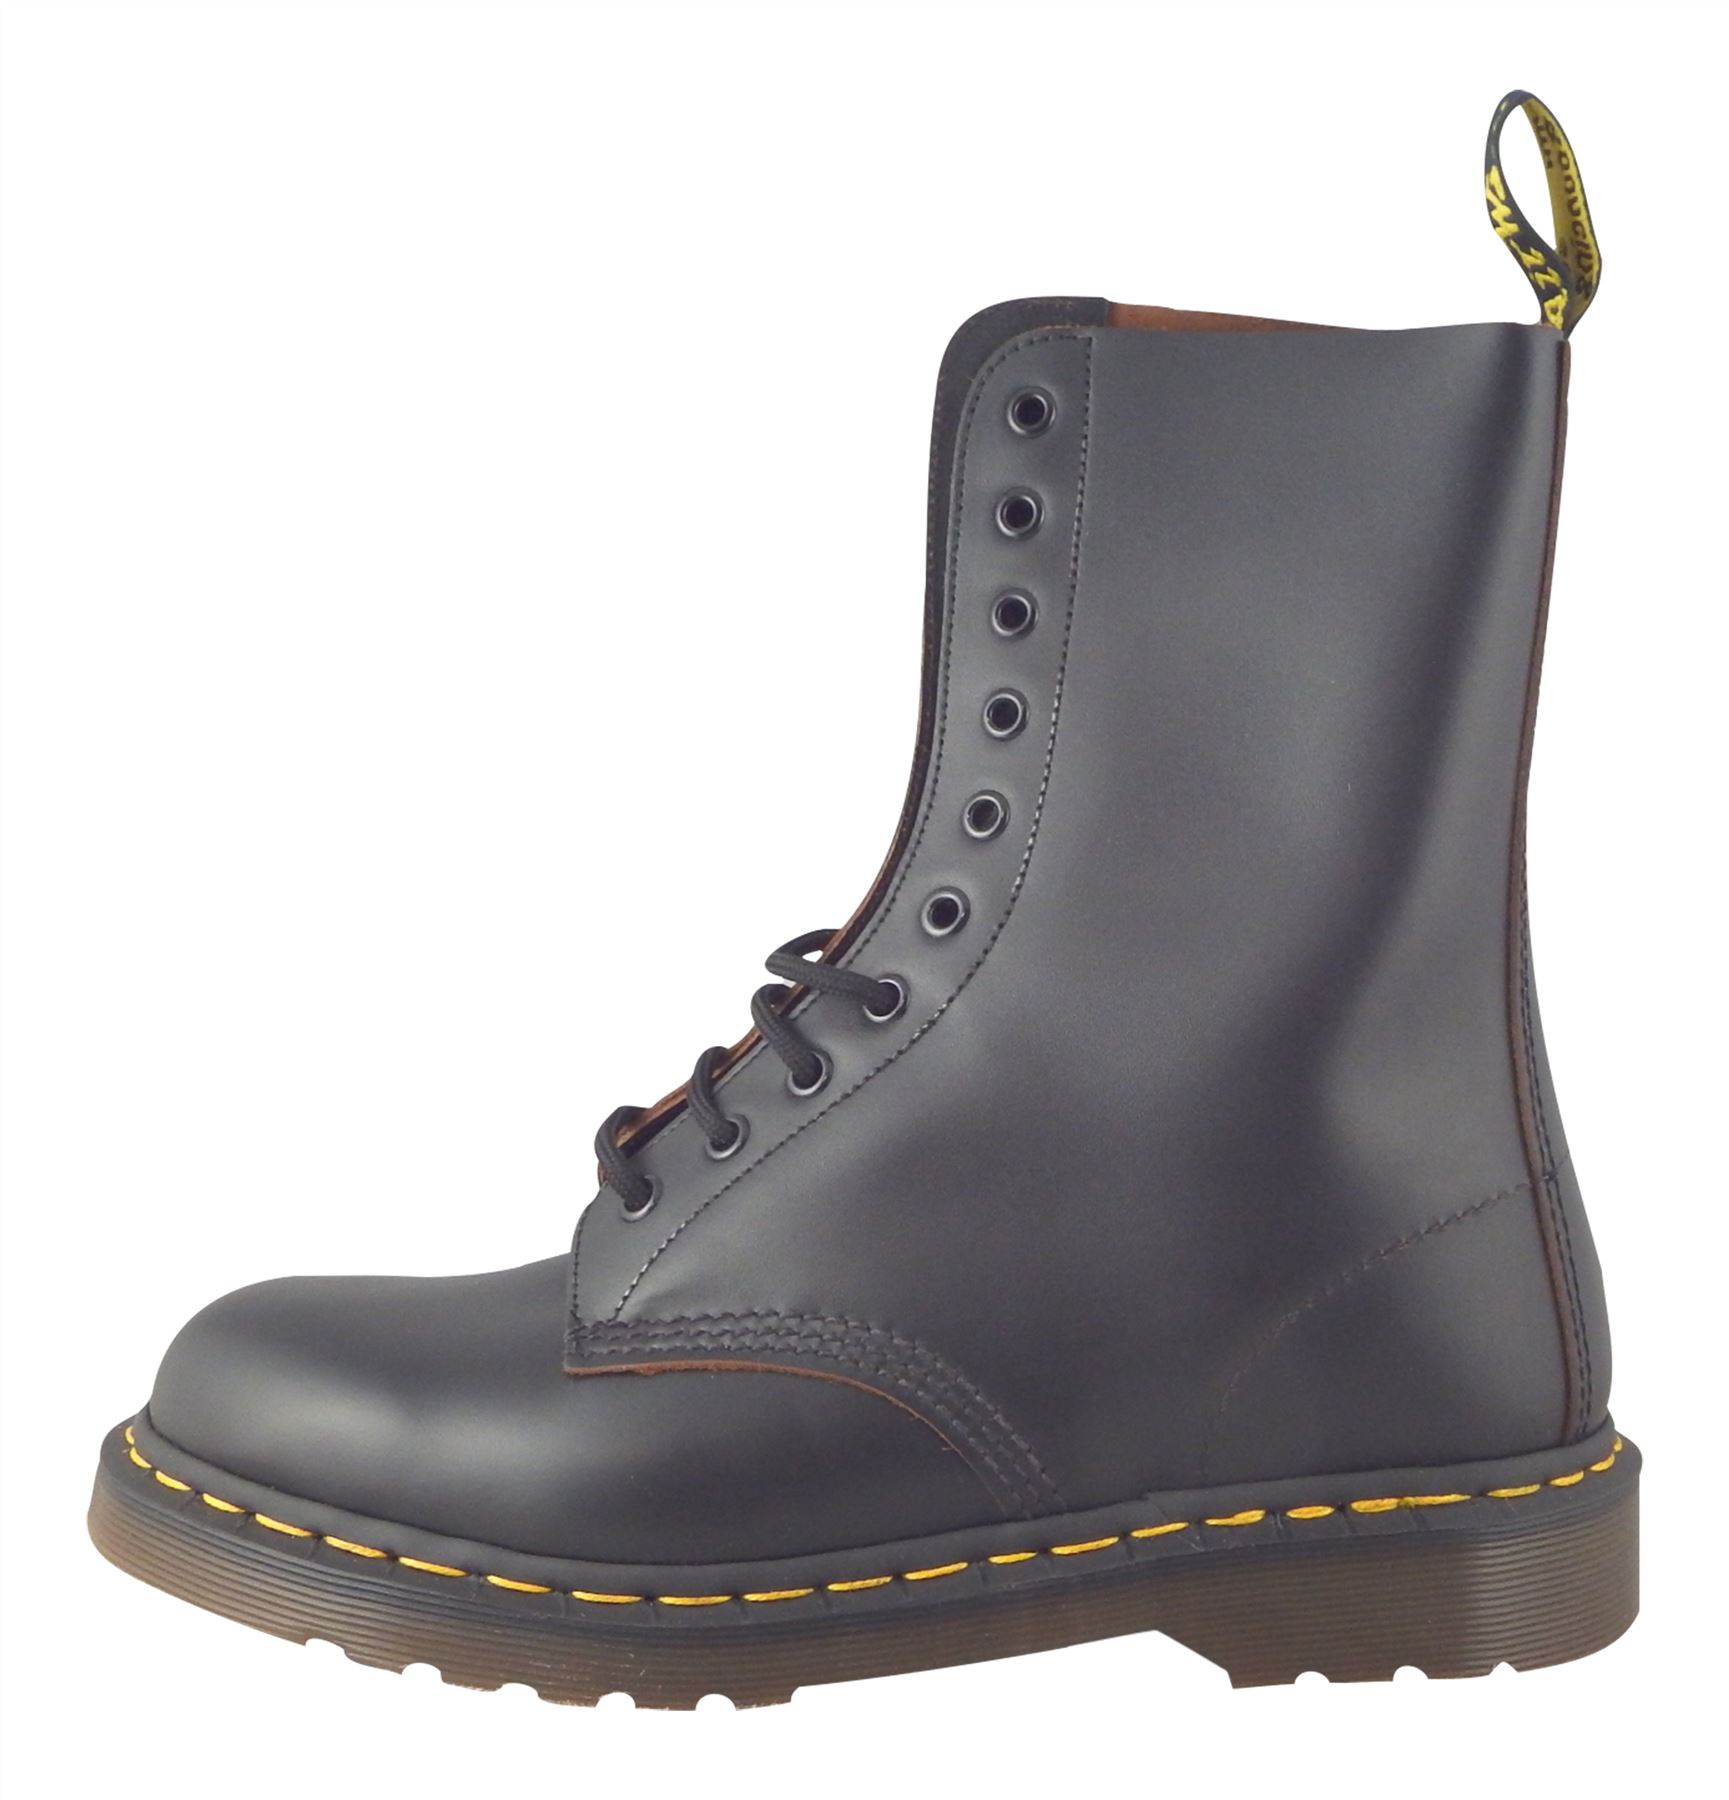 Dr-Martens-1490-Made-in-England-MIE-Black-